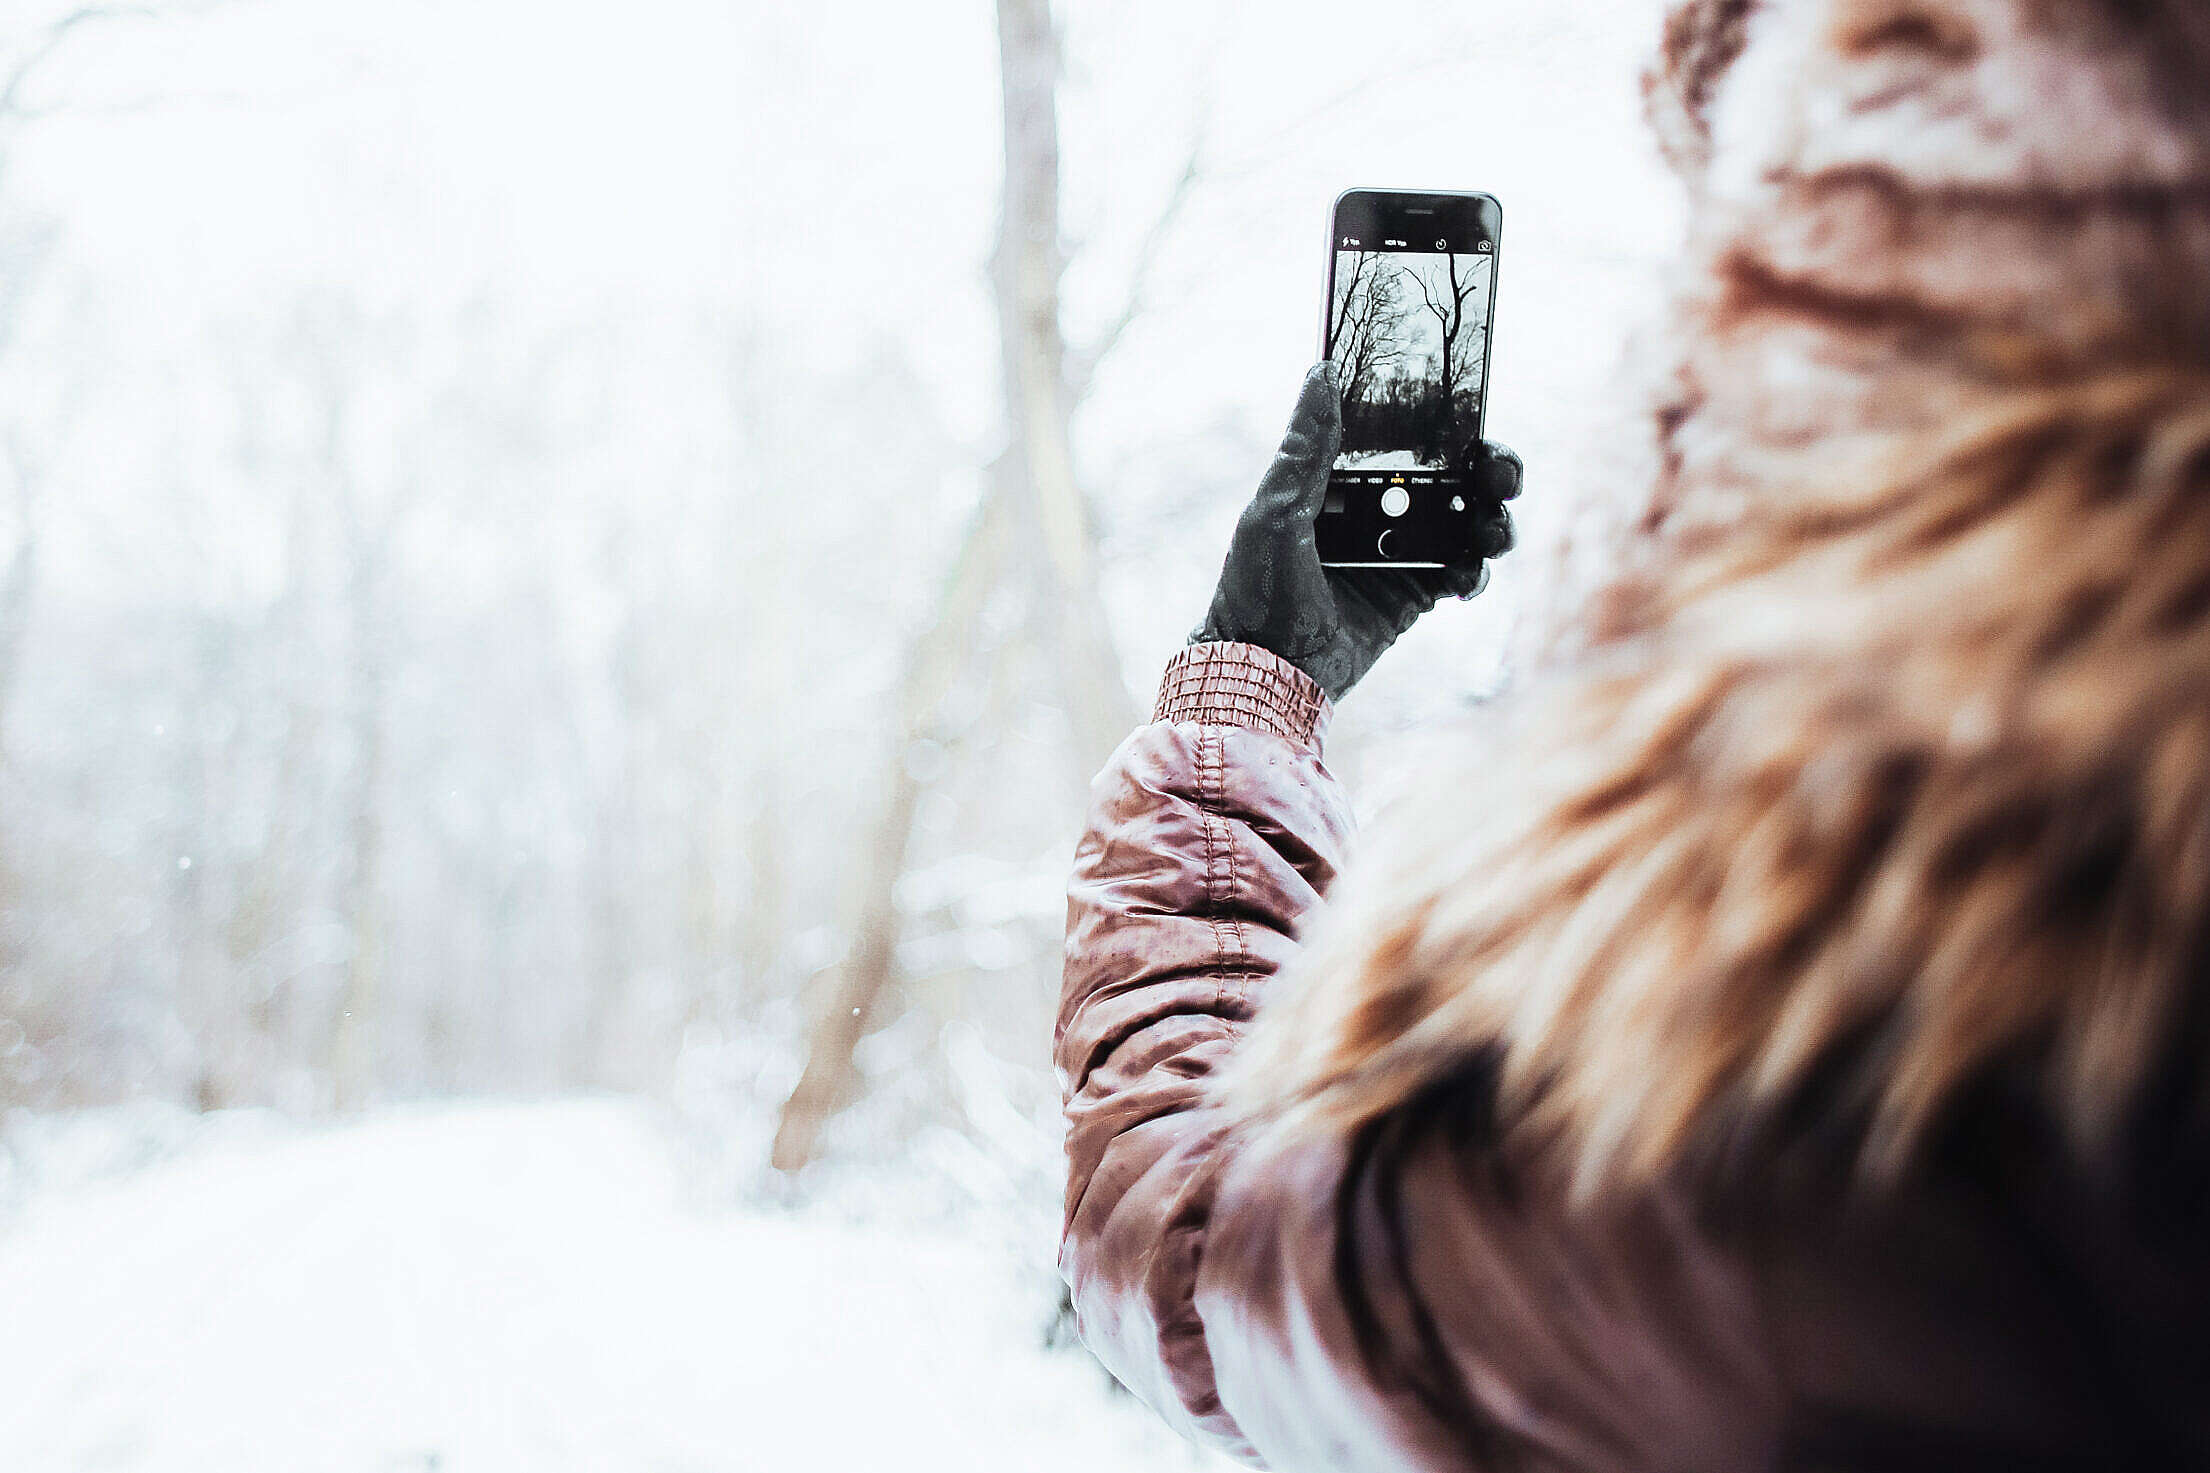 Girl Shooting with her iPhone 6 in Winter Free Stock Photo